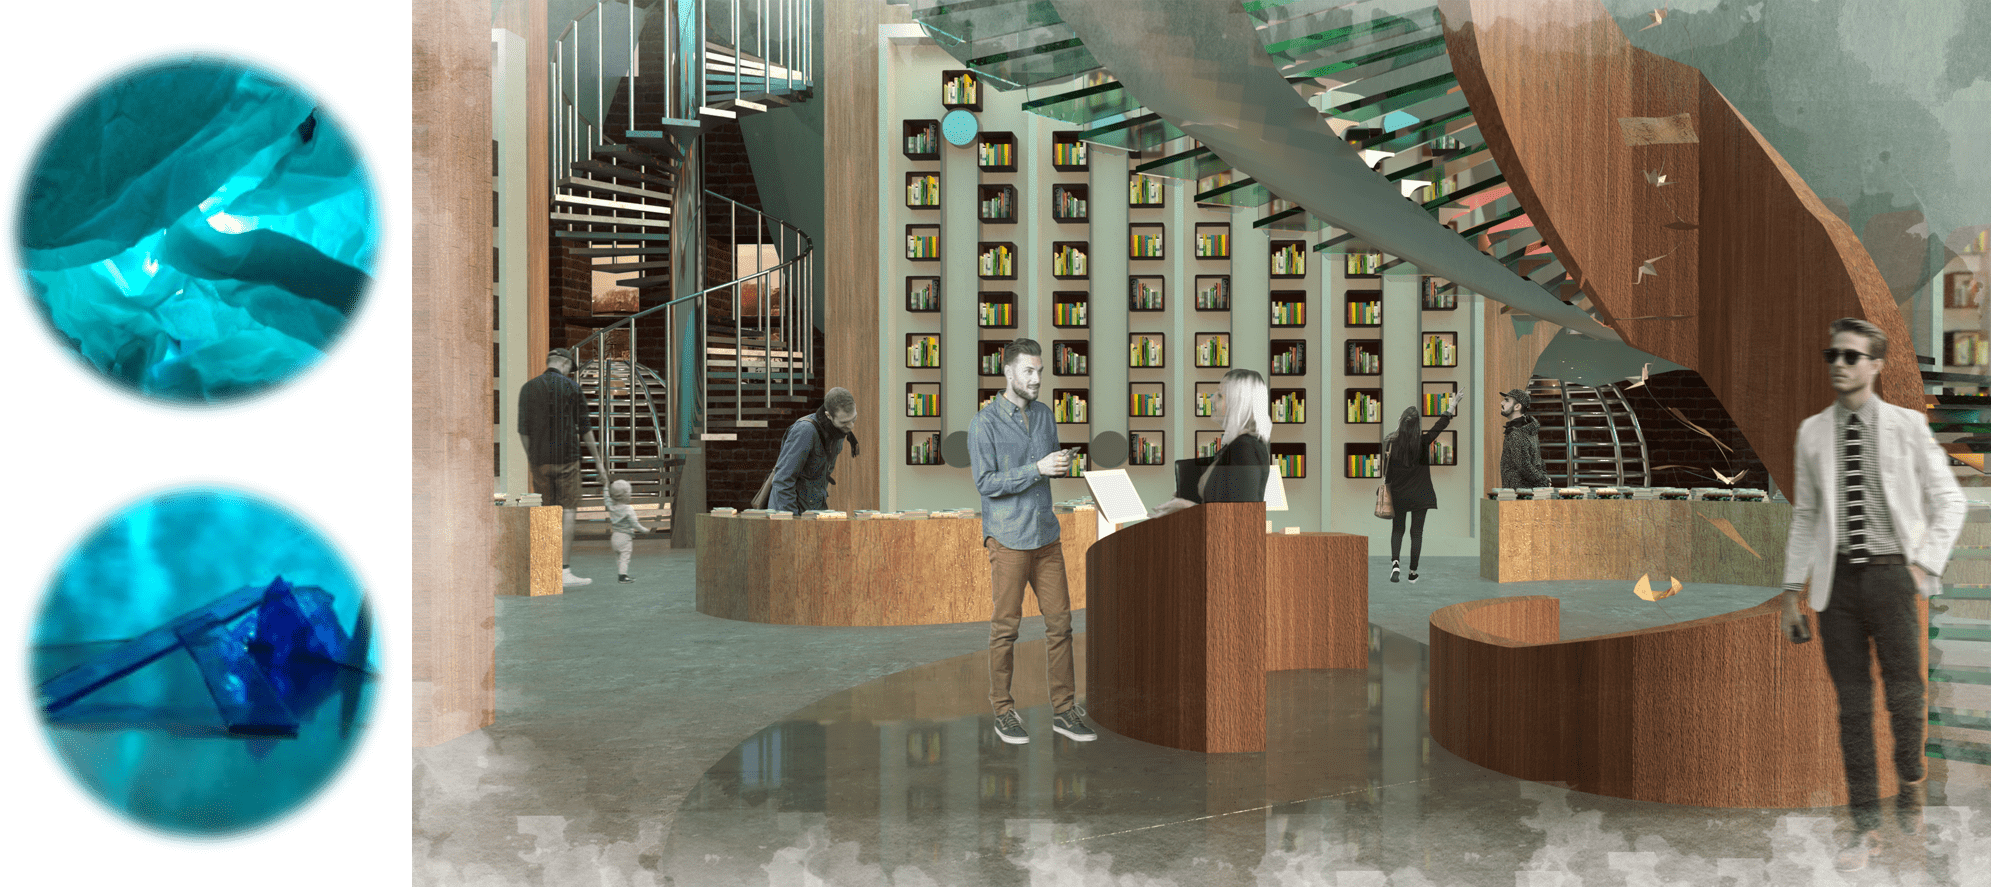 The library space with books from sustainable food recipes to eco-friendly plant growth. The inspiration for the space's aesthetic, experience and structure comes from conceptual models made as a response to site.